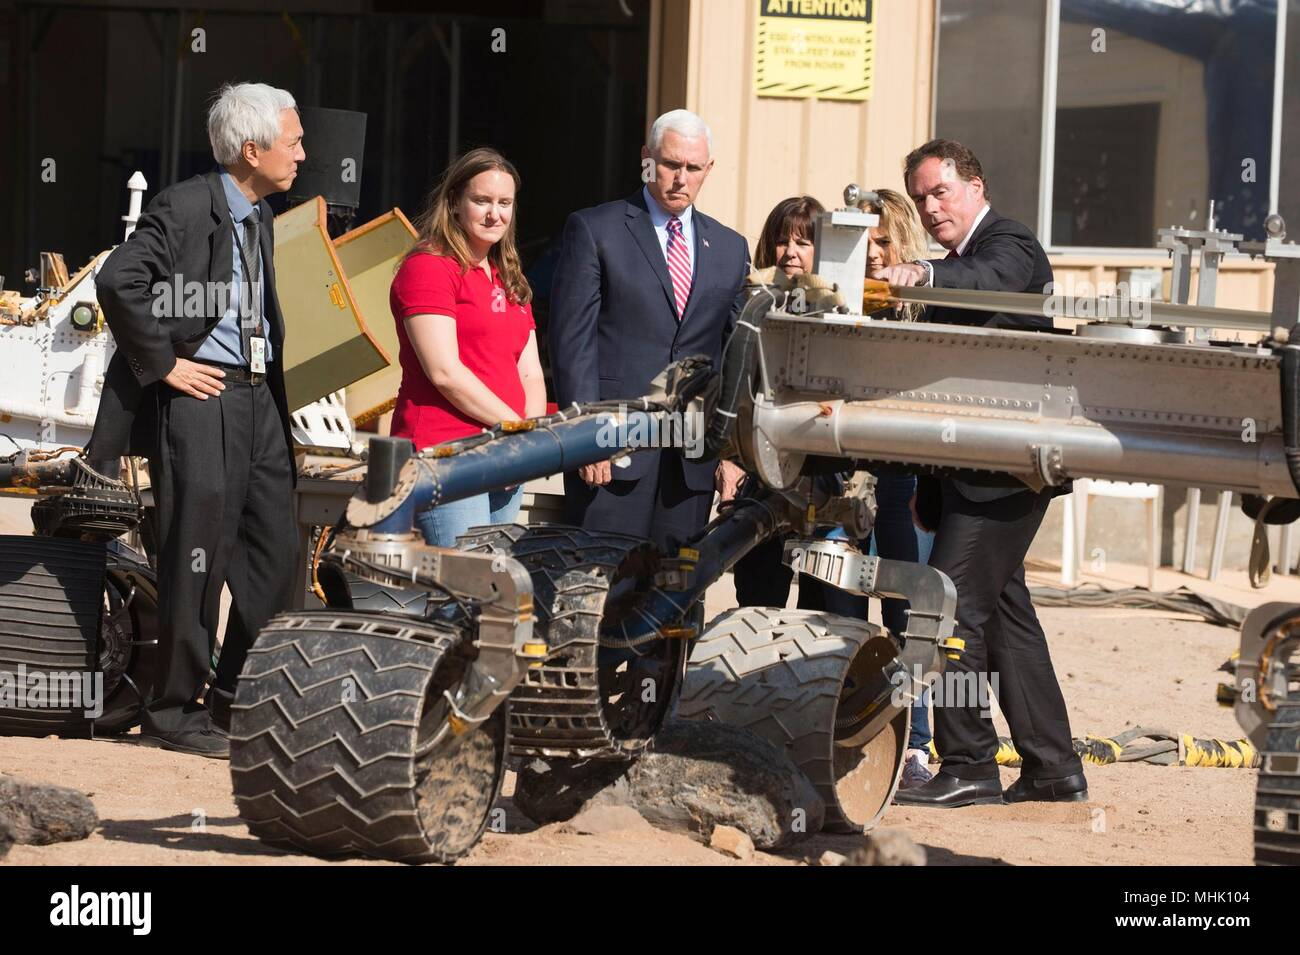 U.S. Vice President Mike Pence, center, views a rover nicknamed 'Scarecrow' during a visit to the NASA Jet Propulsion Laboratory Mars Yard April 28, 2018 in Pasadena, California. Standing from left to right are: NASA Mars Exploration Manager Li Fuk, Mars Curiosity Engineering Operations Team Chief Megan Lin, Vice President Mike Pence, Karen Pence, daughter Charlotte Pence, and JPL Director Michael Watkins. - Stock Image